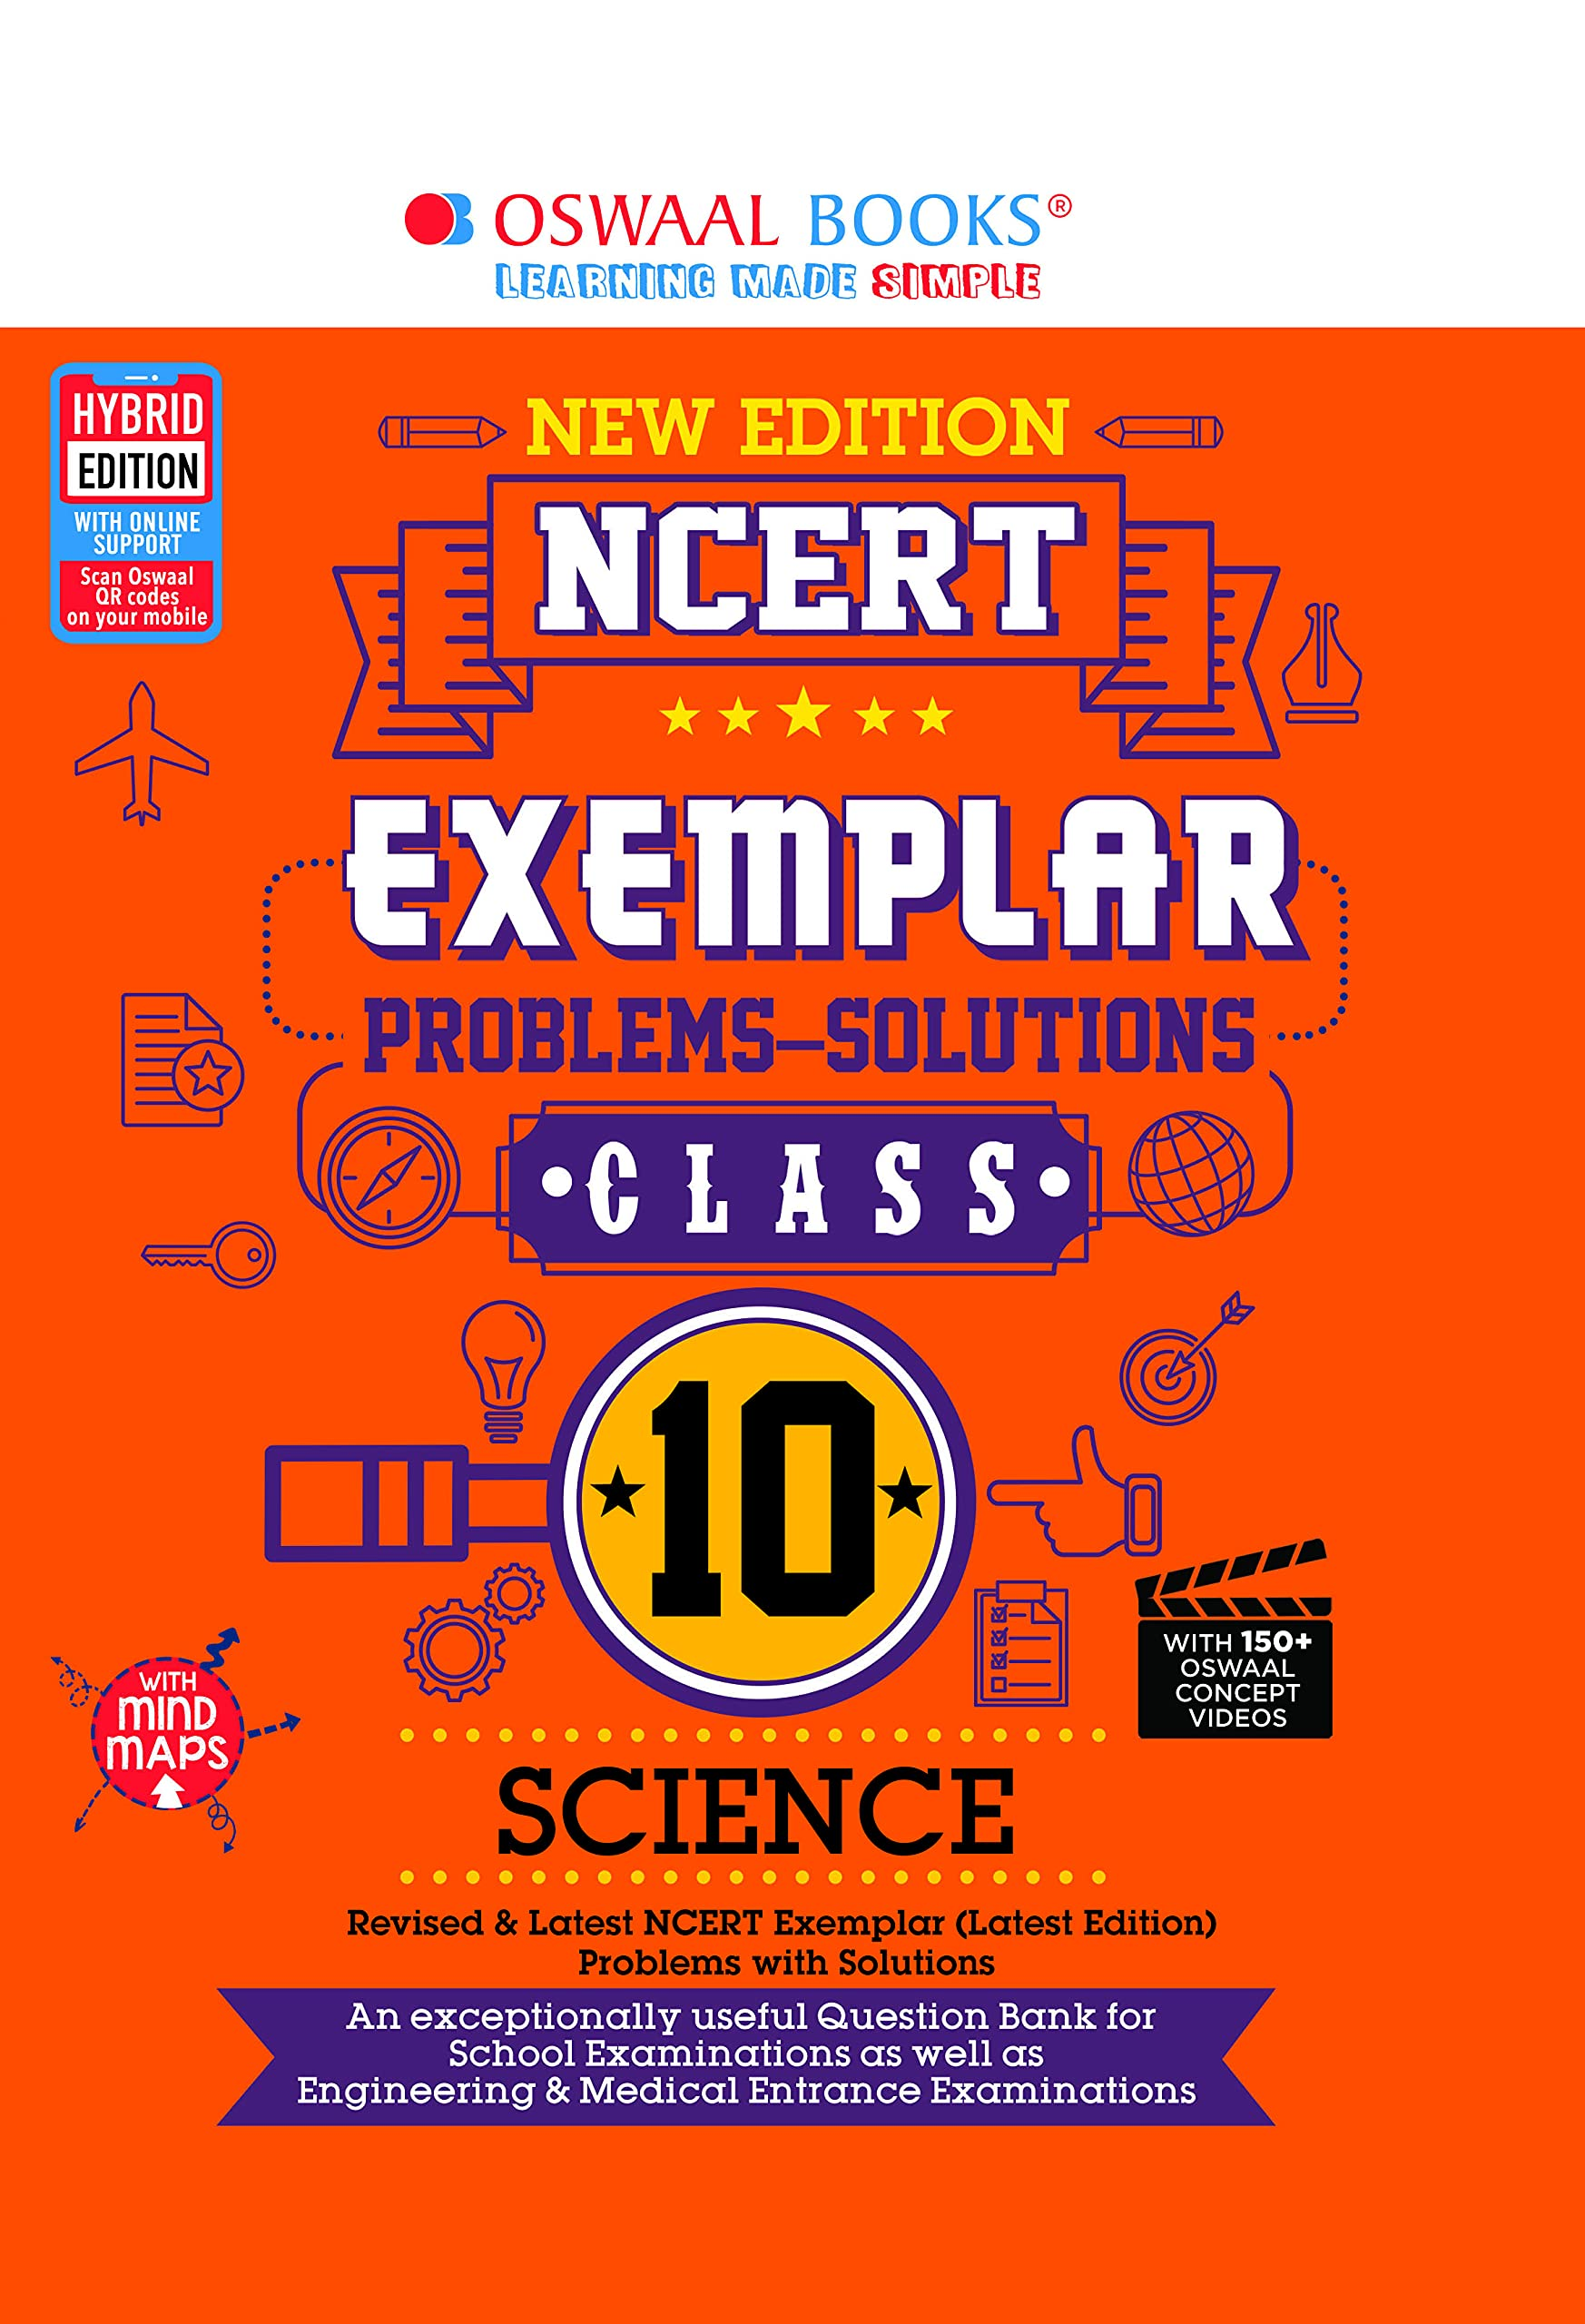 Oswaal NCERT Exemplar Problems-solutions Class 10, Science (For 2022 Exam)